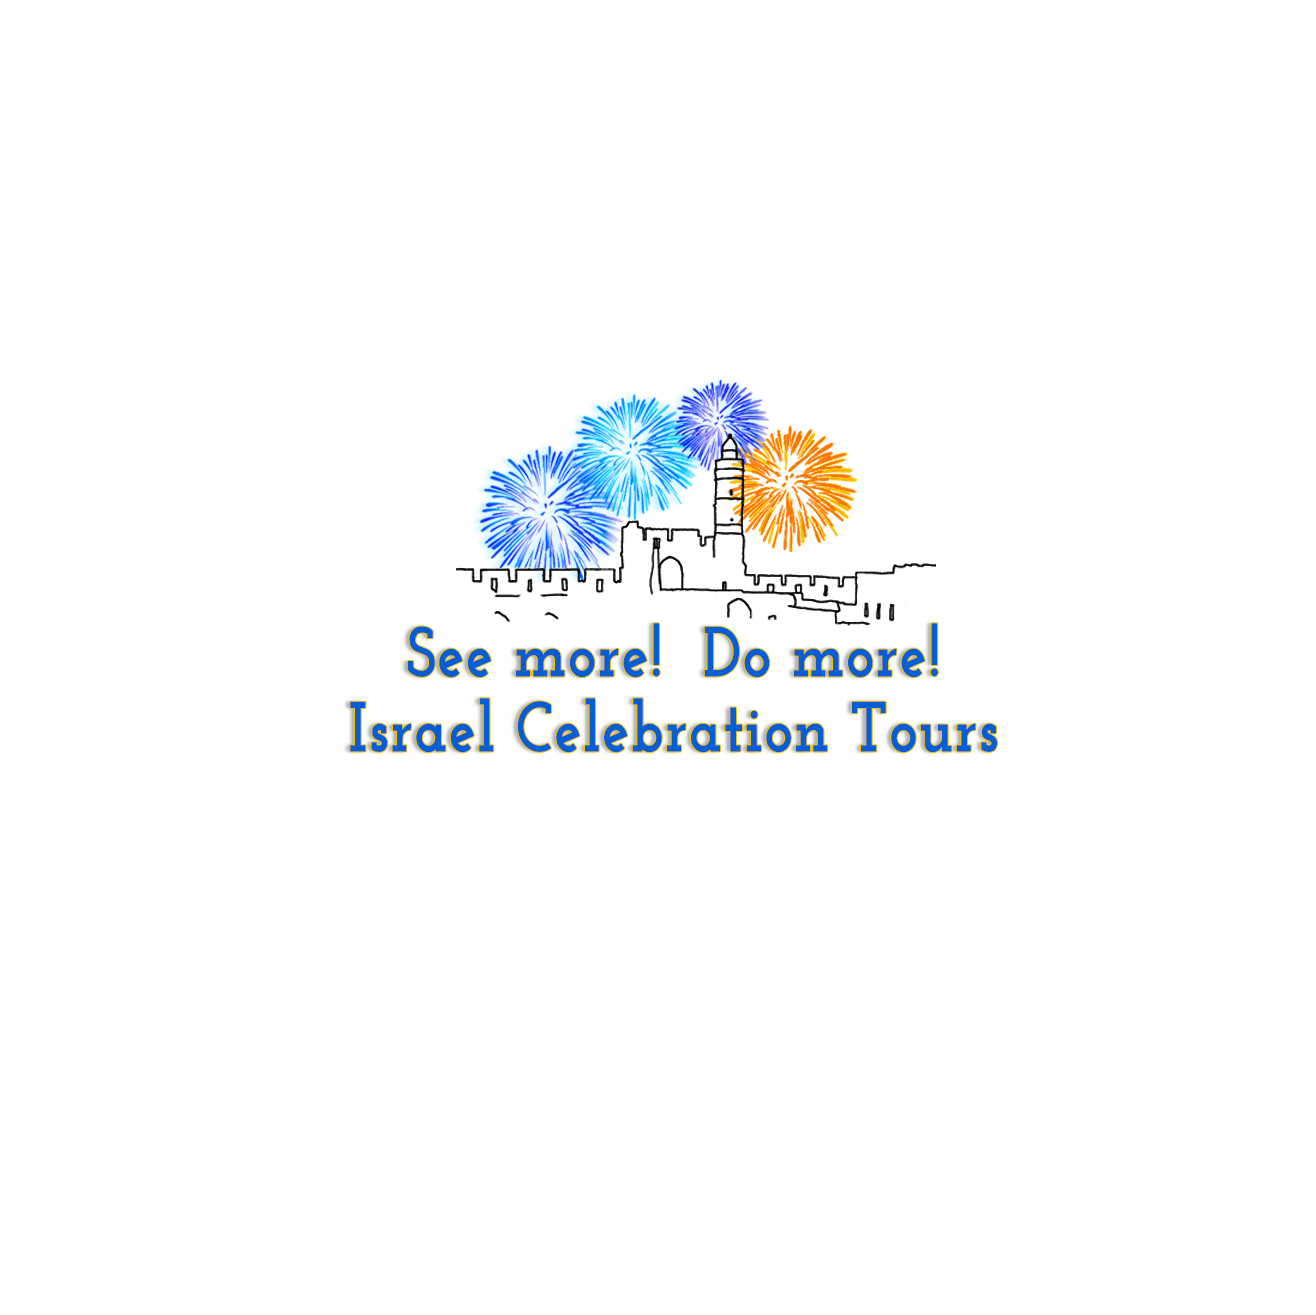 Israel Celebration Tours! See More! Do More!